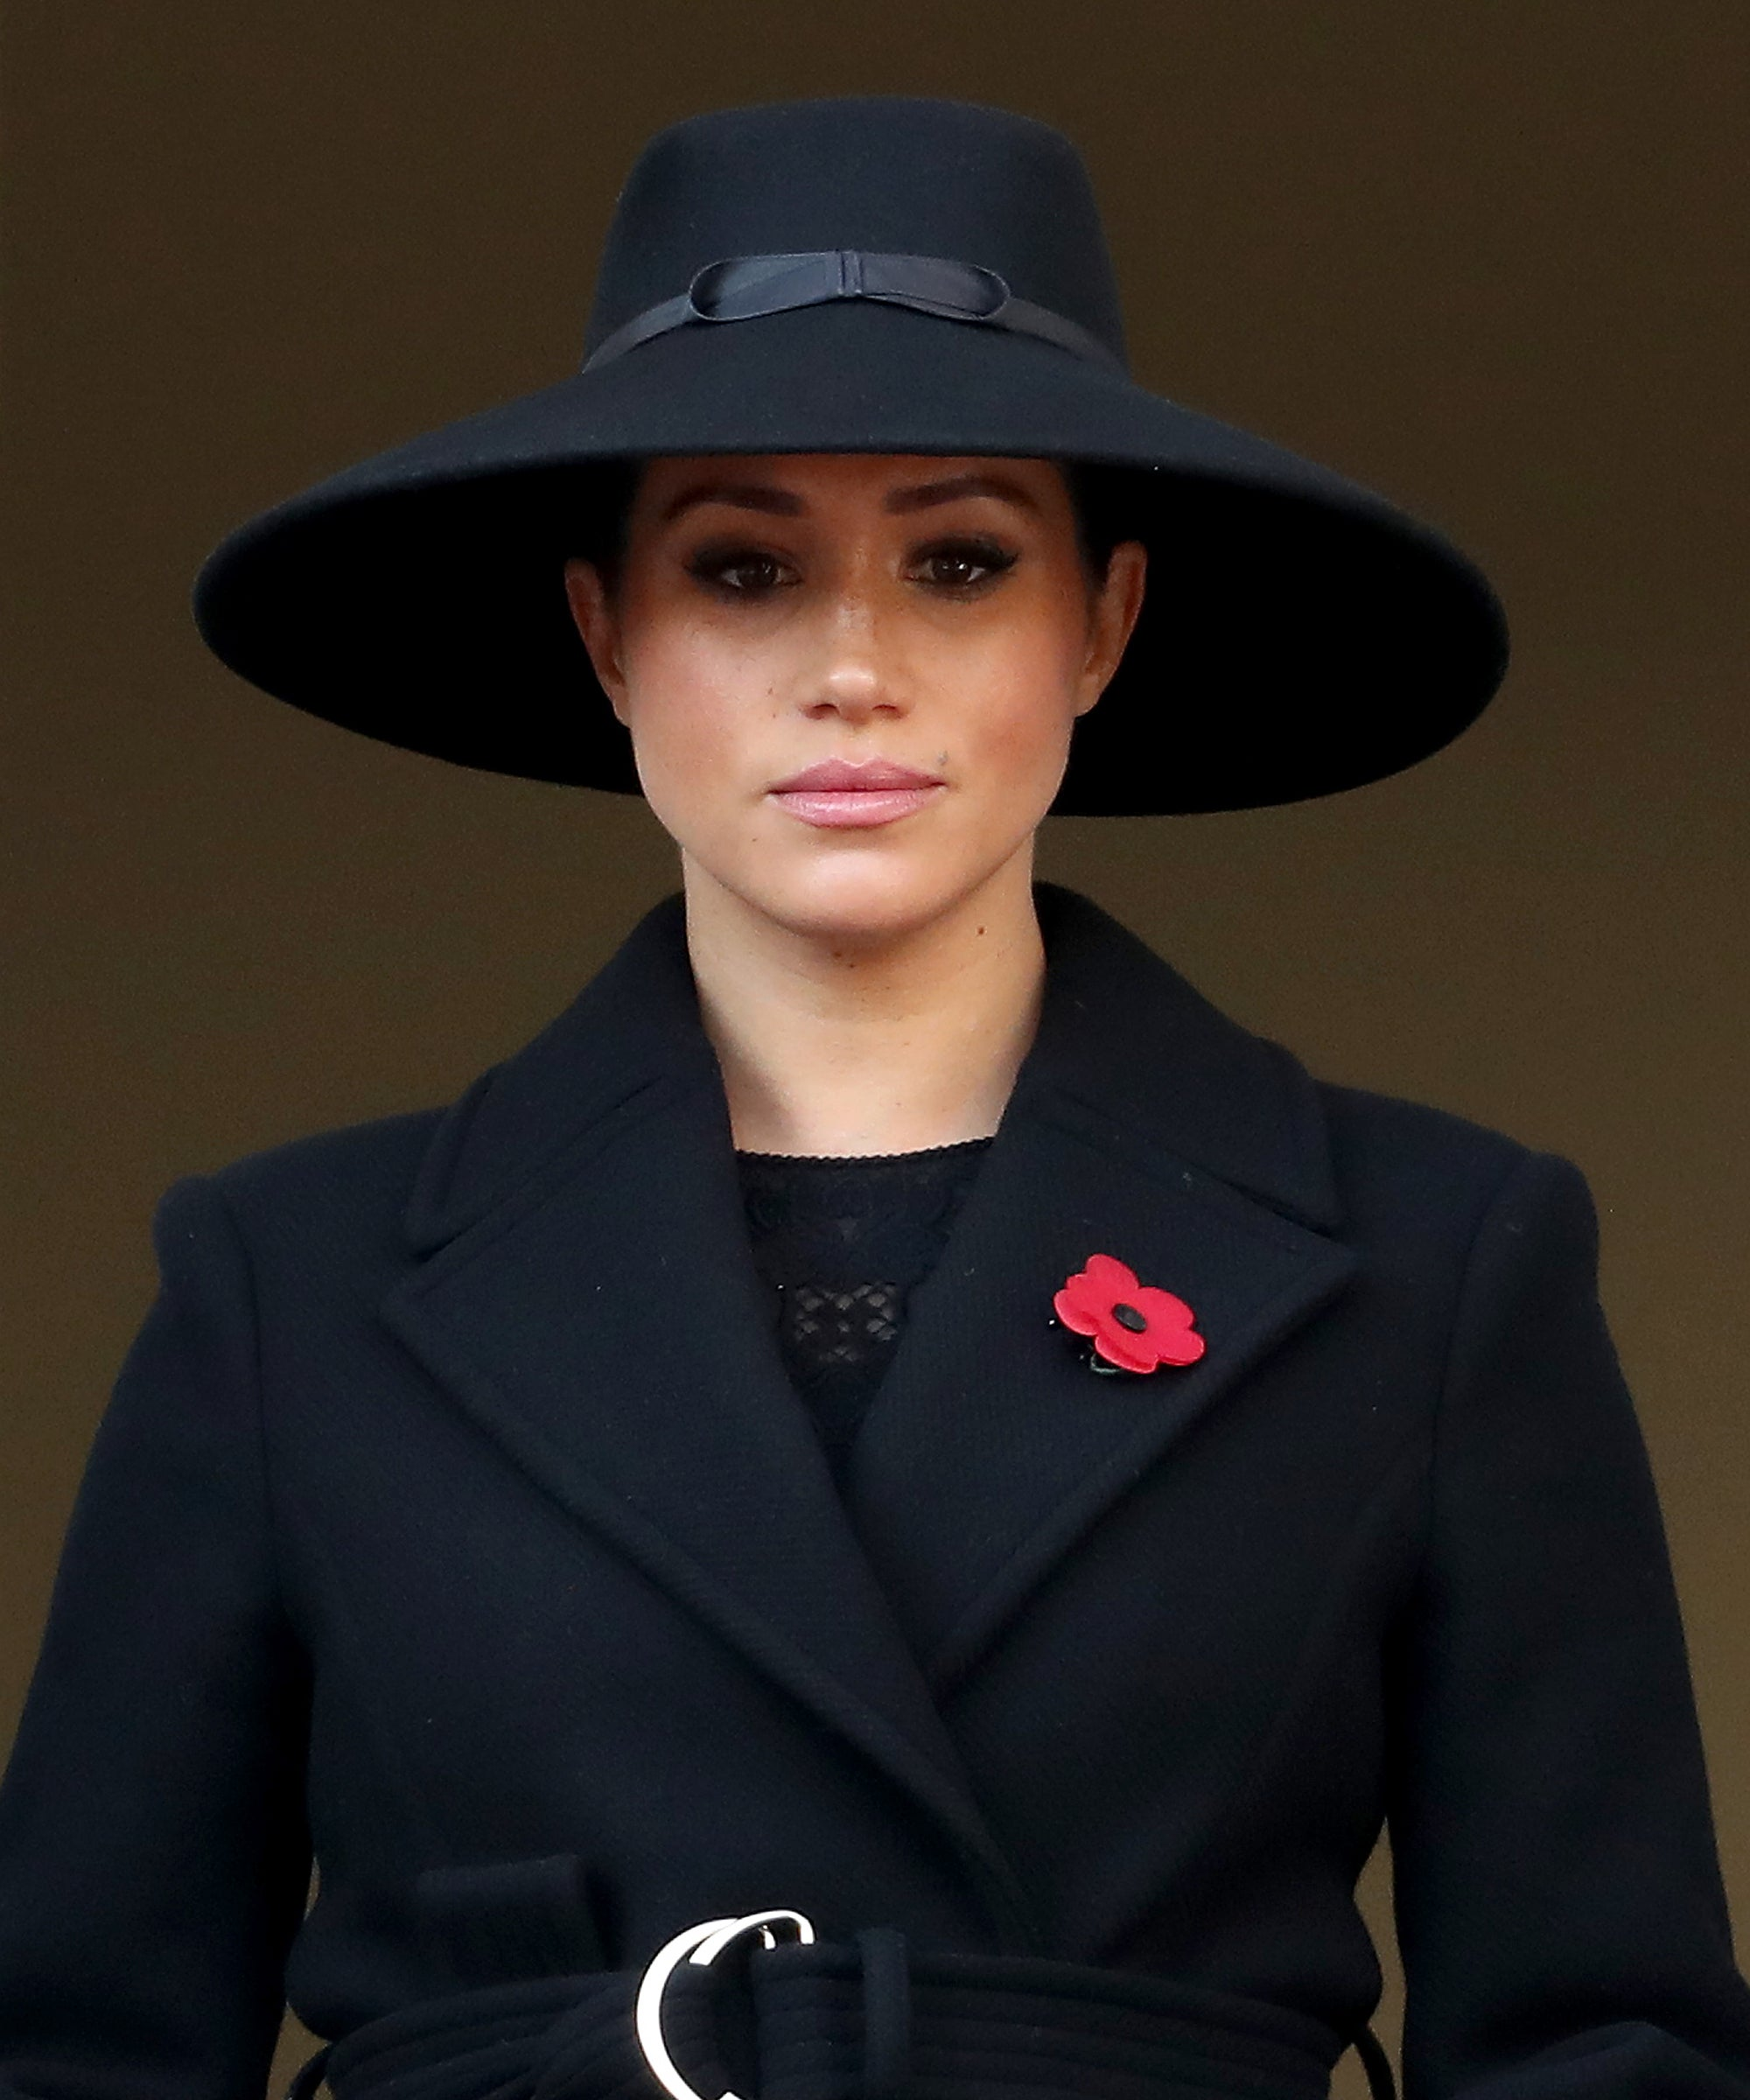 Meghan Markle Denies Spending Taxpayer Money On A Copper Tub & Yoga Studio In New Lawsuit